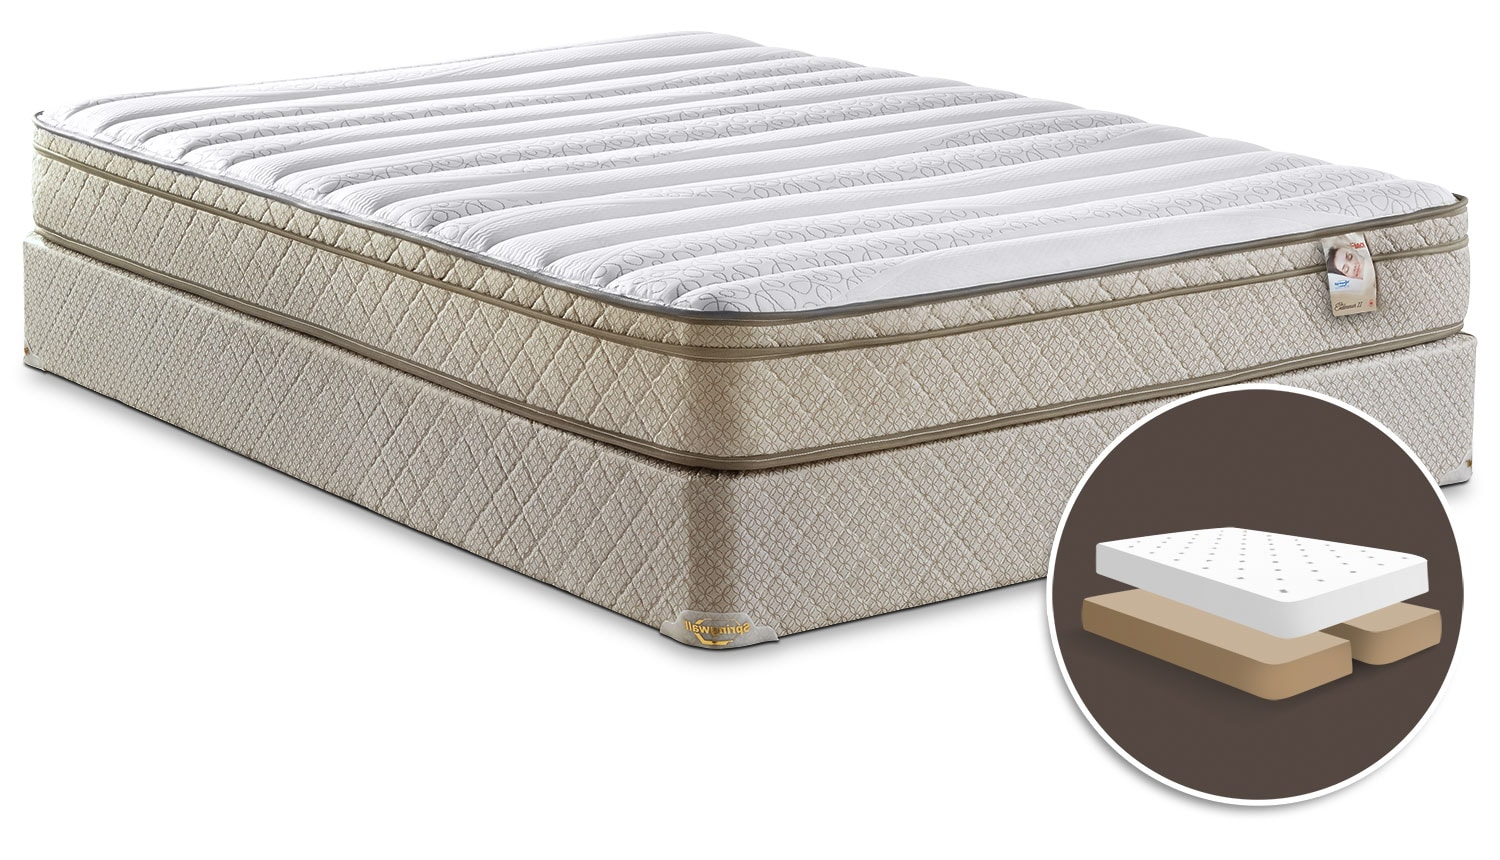 Springwall Endeavour 2 Euro-Top Firm Queen Mattress and Split Boxspring Set